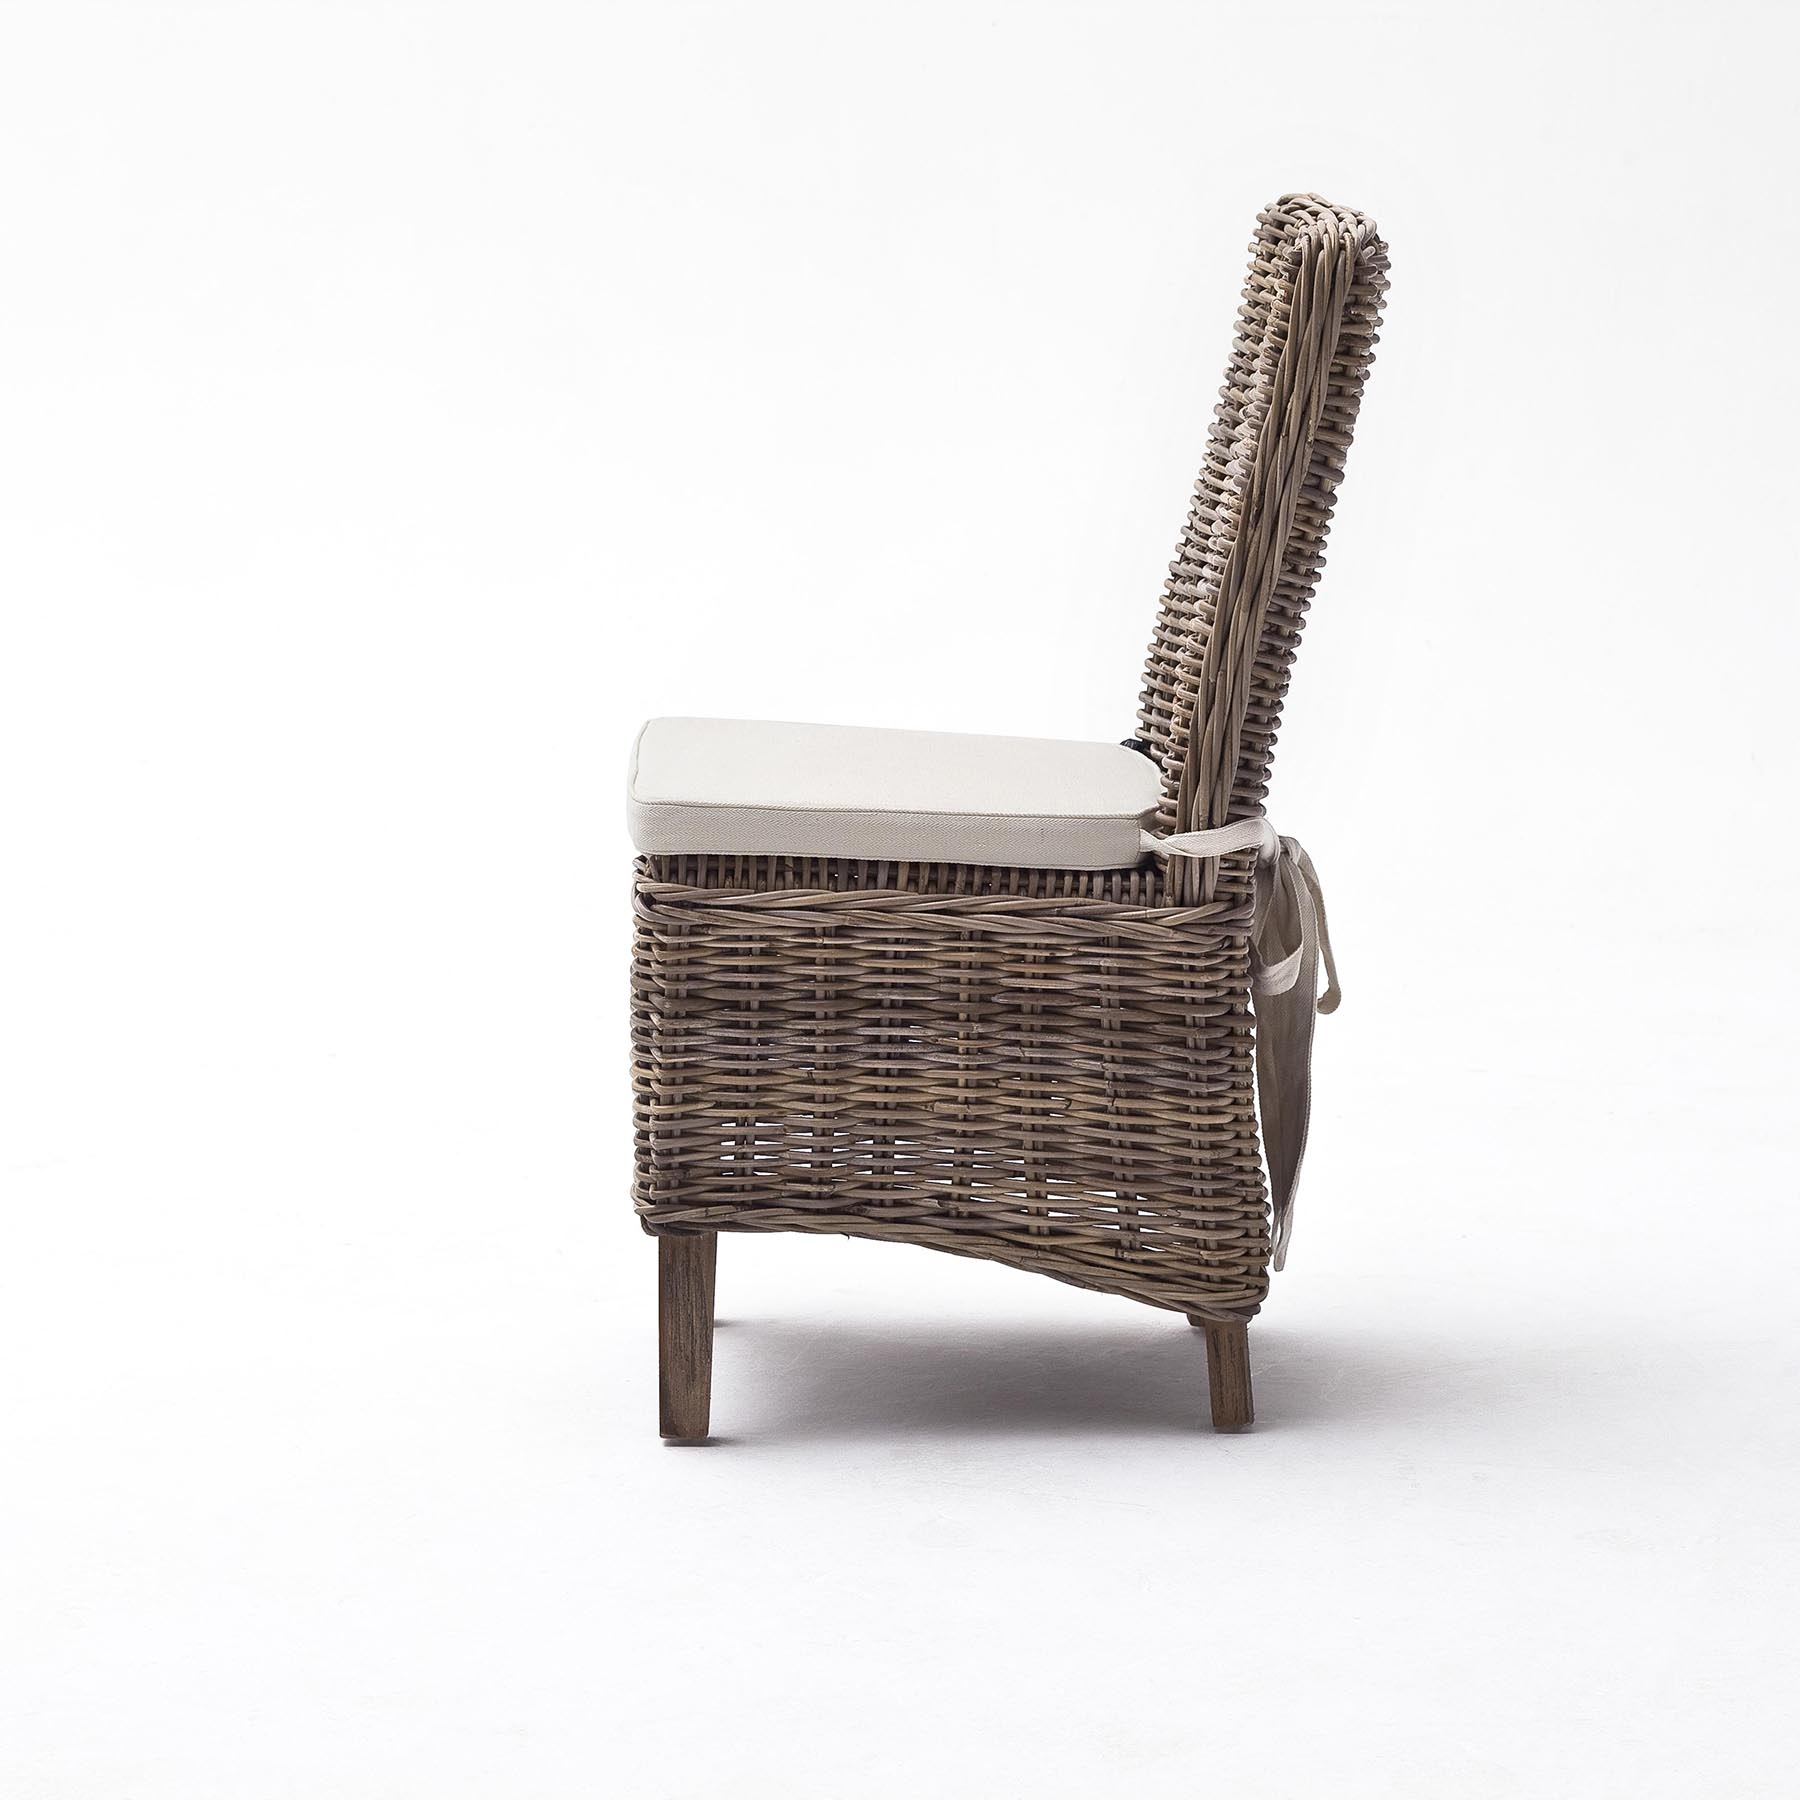 Cheap Wicker Dining Chairs Cheap Rattan Dining Chair  : CR143 from www.amlibgroup.com size 1800 x 1800 jpeg 195kB